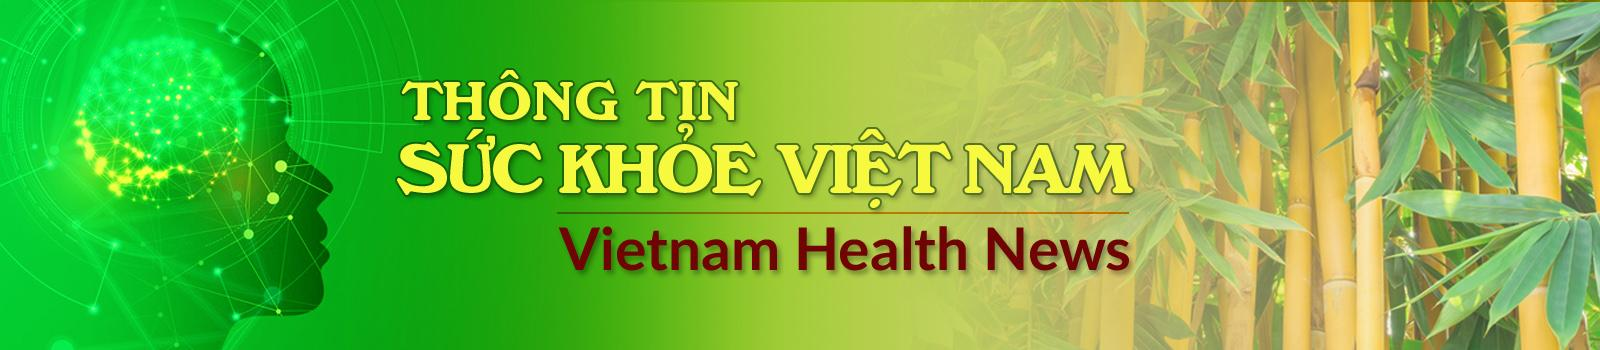 THE CENTER OF COMMUNITY HEALTHCARE EDUCATION IN HANOI